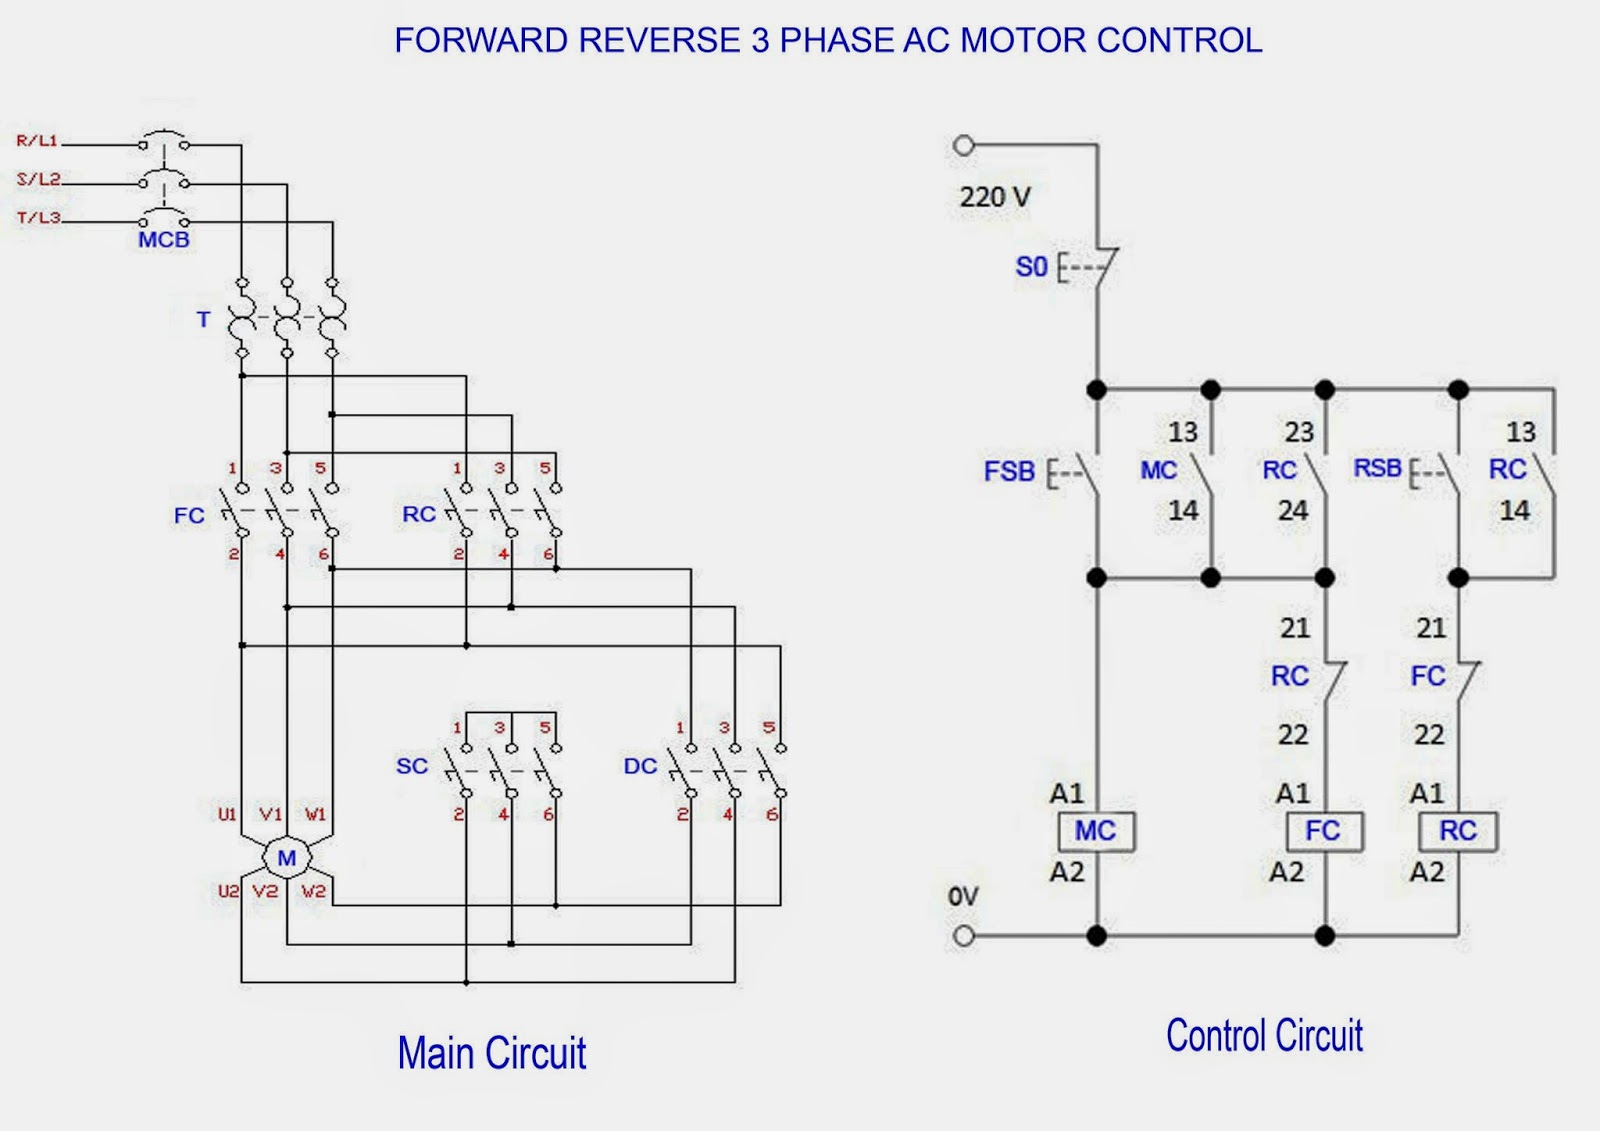 forward reverse 3 phase ac motor control wiring diagram electrical rh windingdiagrams blogspot com brushless motor controller wiring diagram bldc motor controller wiring diagram